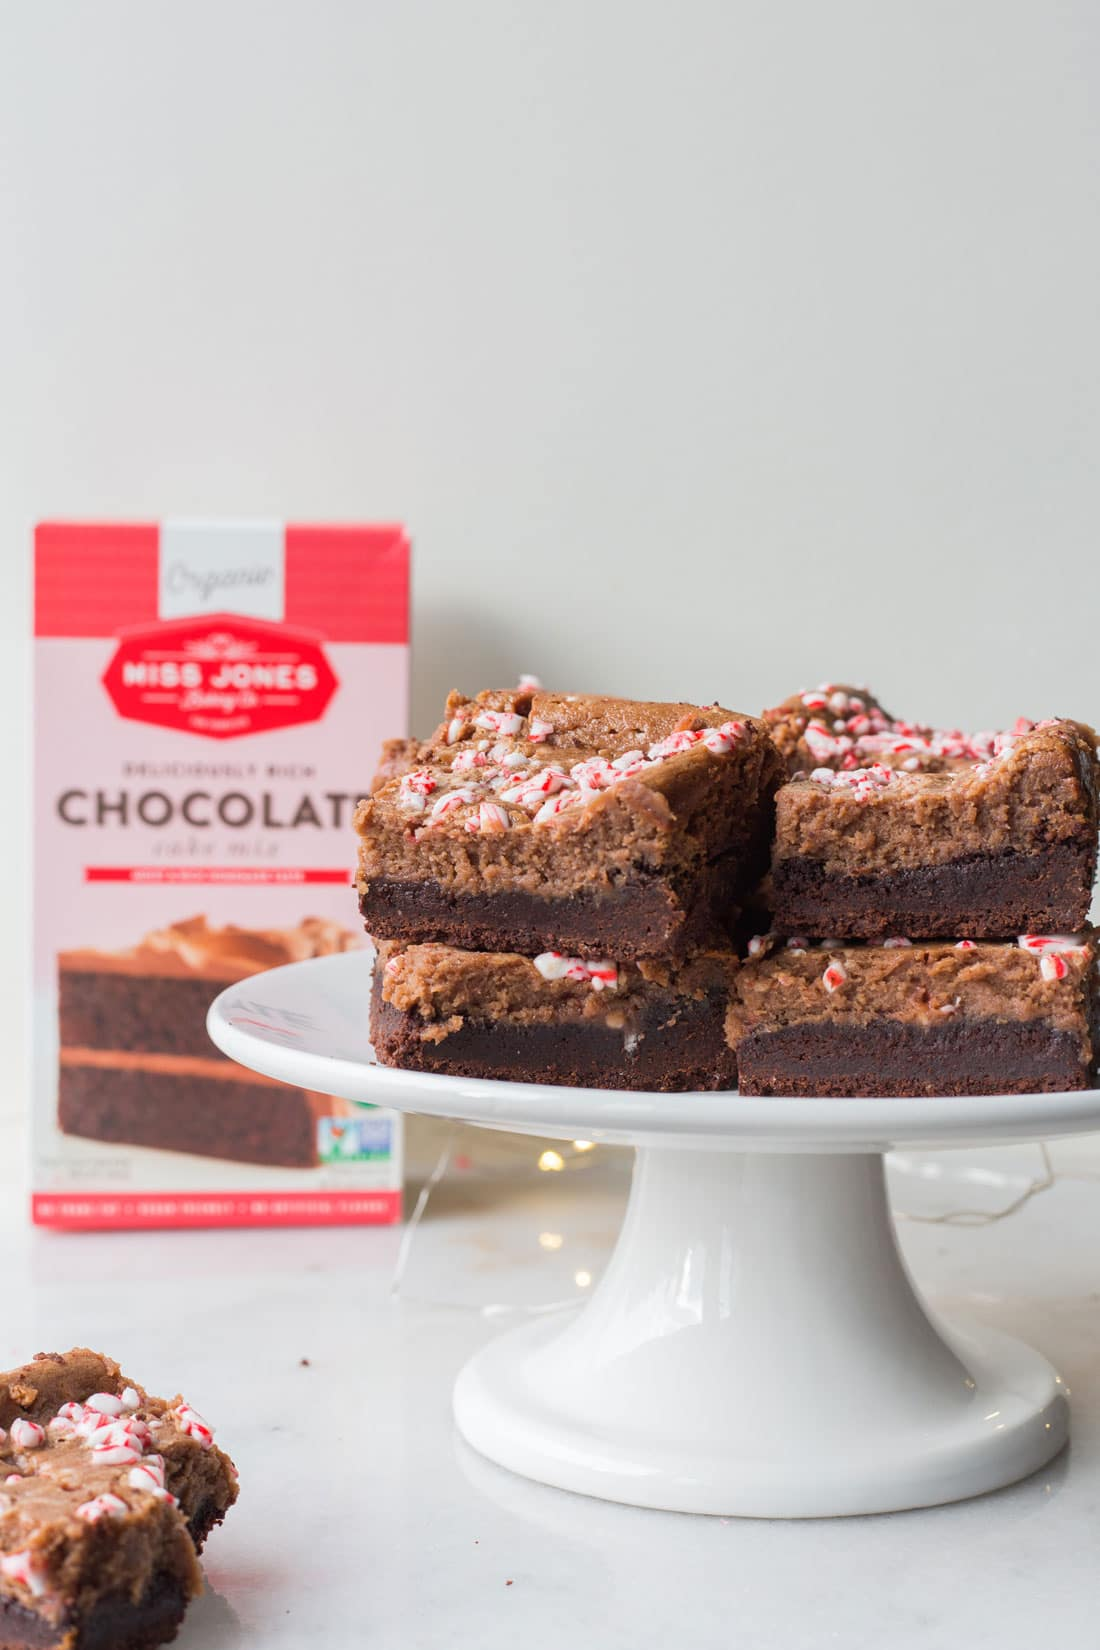 Side picture of Miss Jones Baking Co Chocolate Peppermint Butter Bar side and Miss Jones Baking Organic Chocolate Cake Mix in the background